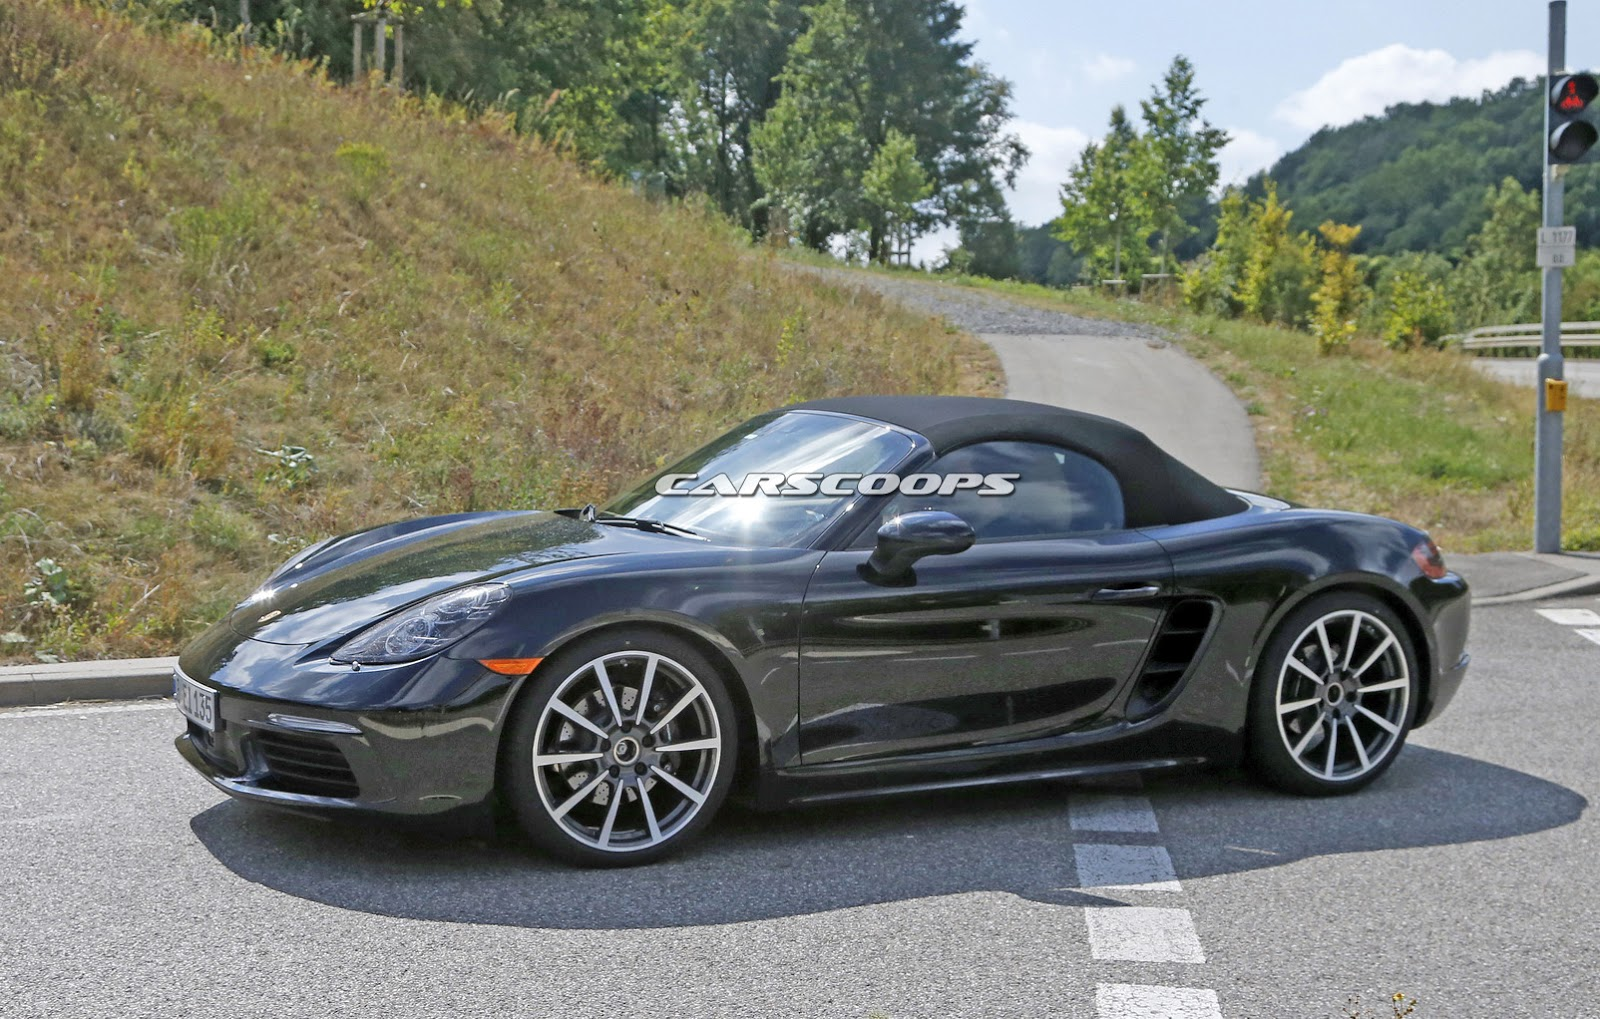 2016 porsche boxster s bing images. Black Bedroom Furniture Sets. Home Design Ideas